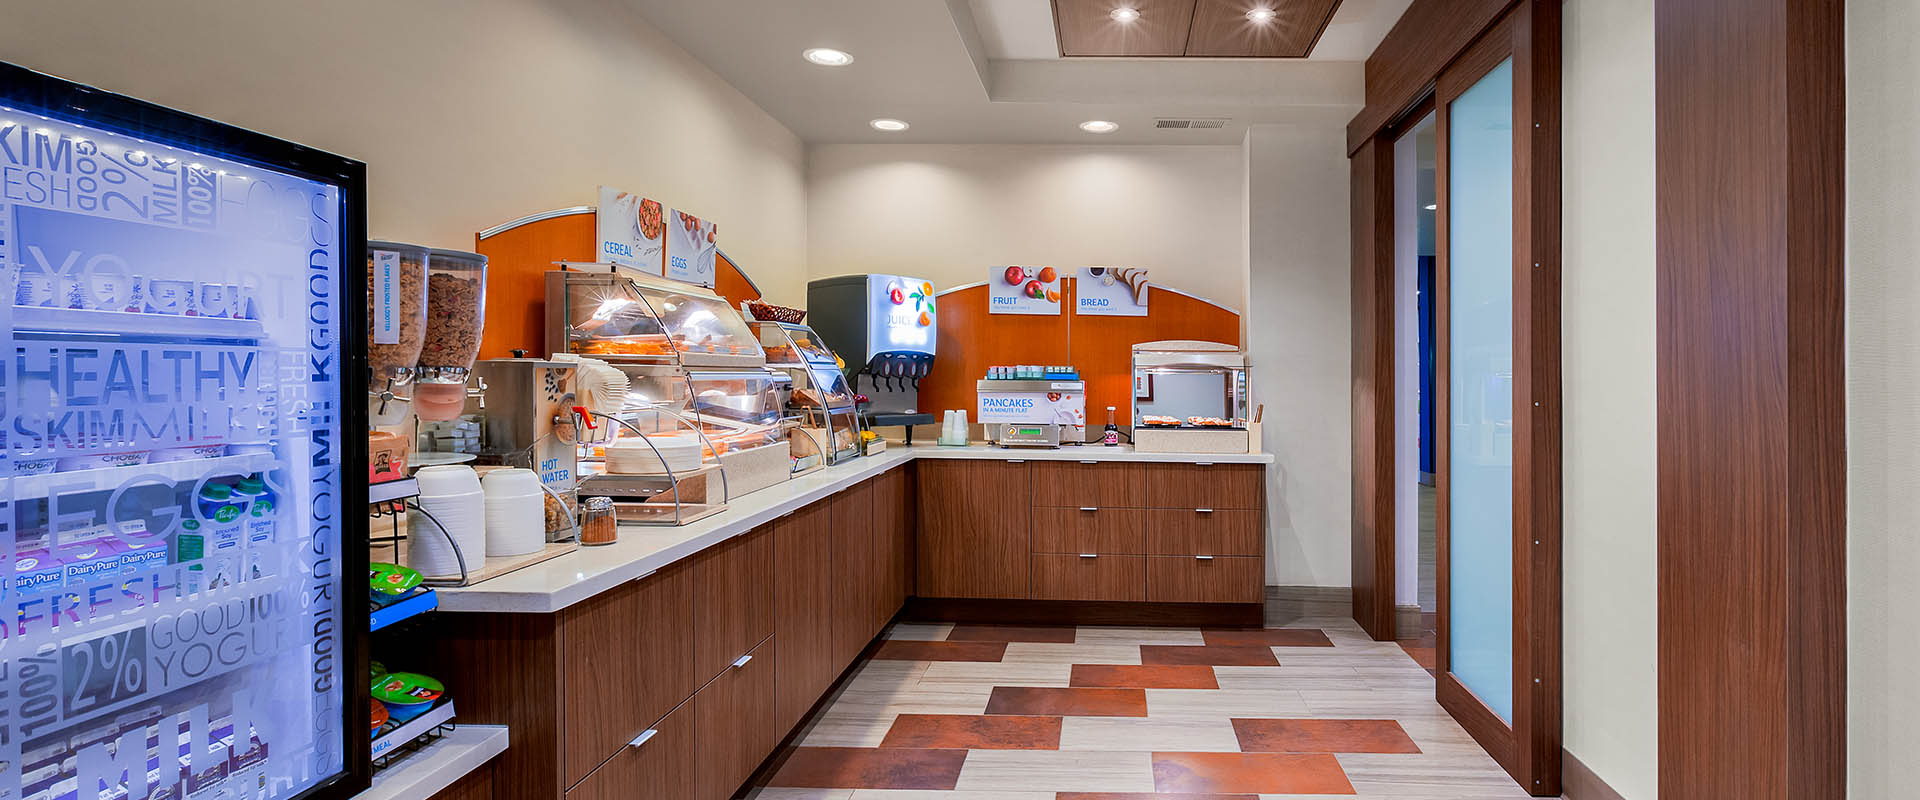 IHG hotel, Oroville, California, coporate, travel, SMART breakfast